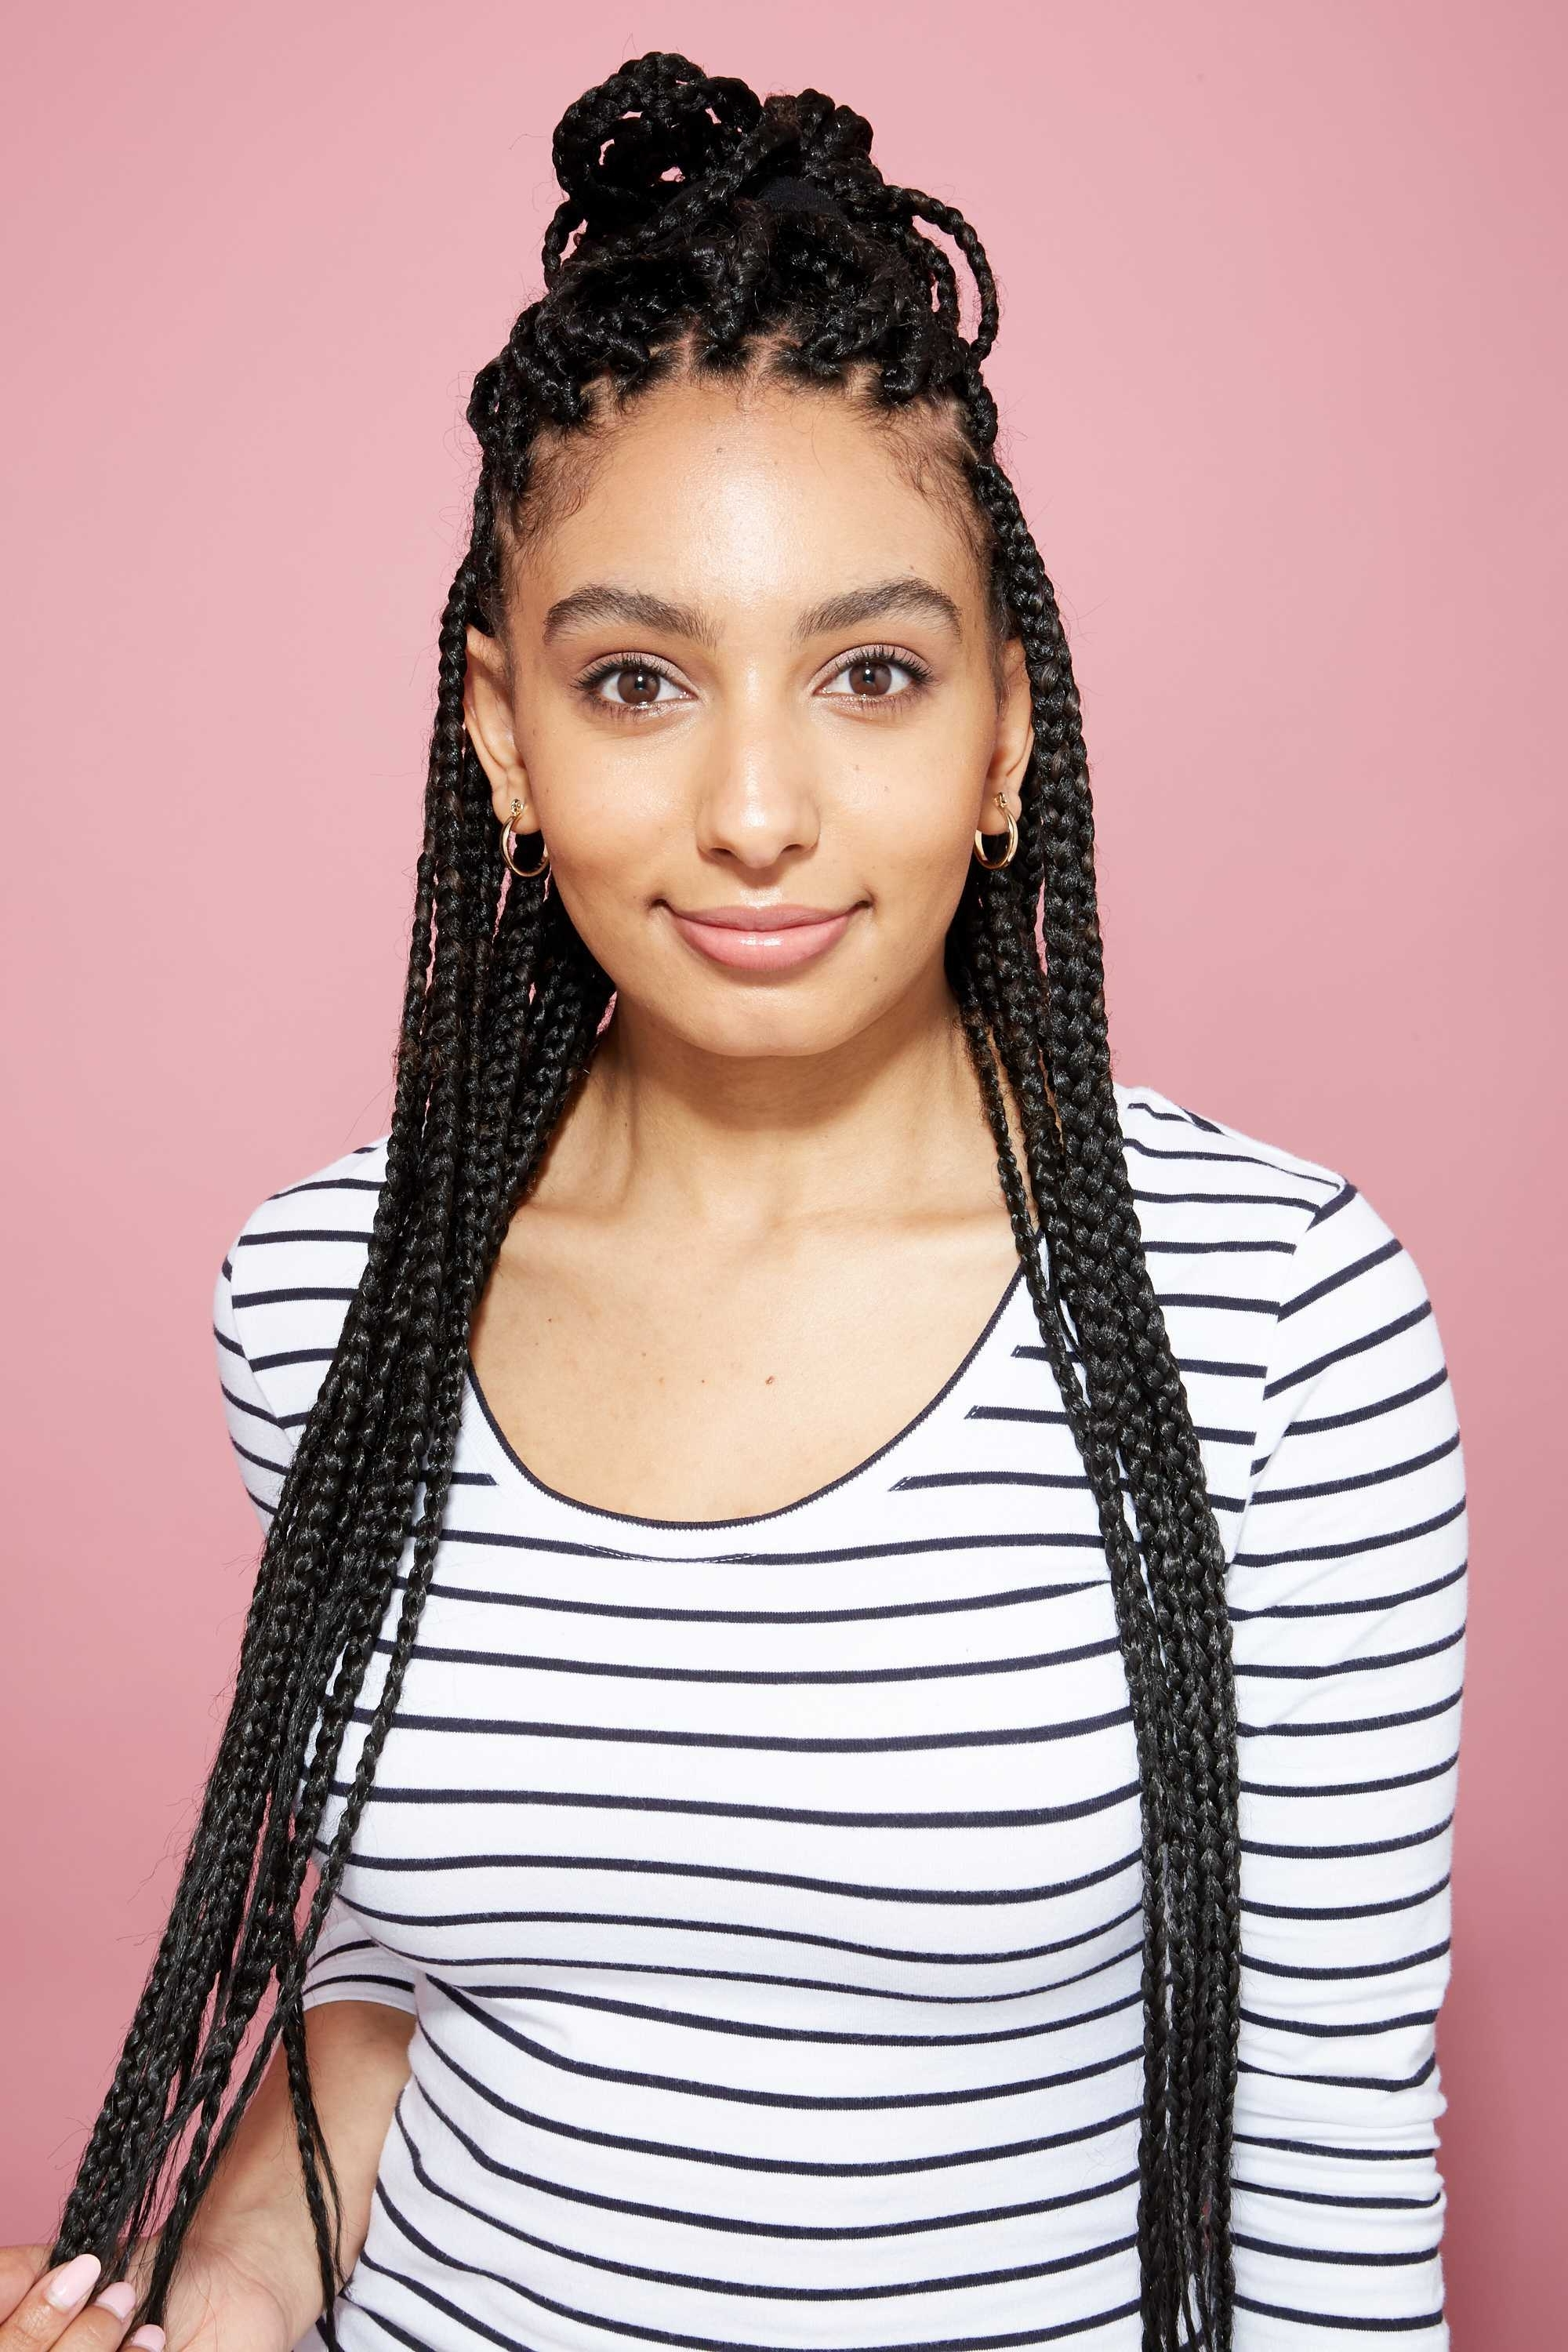 Widely Used Sky High Pompadour Braid Pony Hairstyles Throughout 17 Flawless & Fashionable Ways To Style Long Box Braids (View 14 of 20)